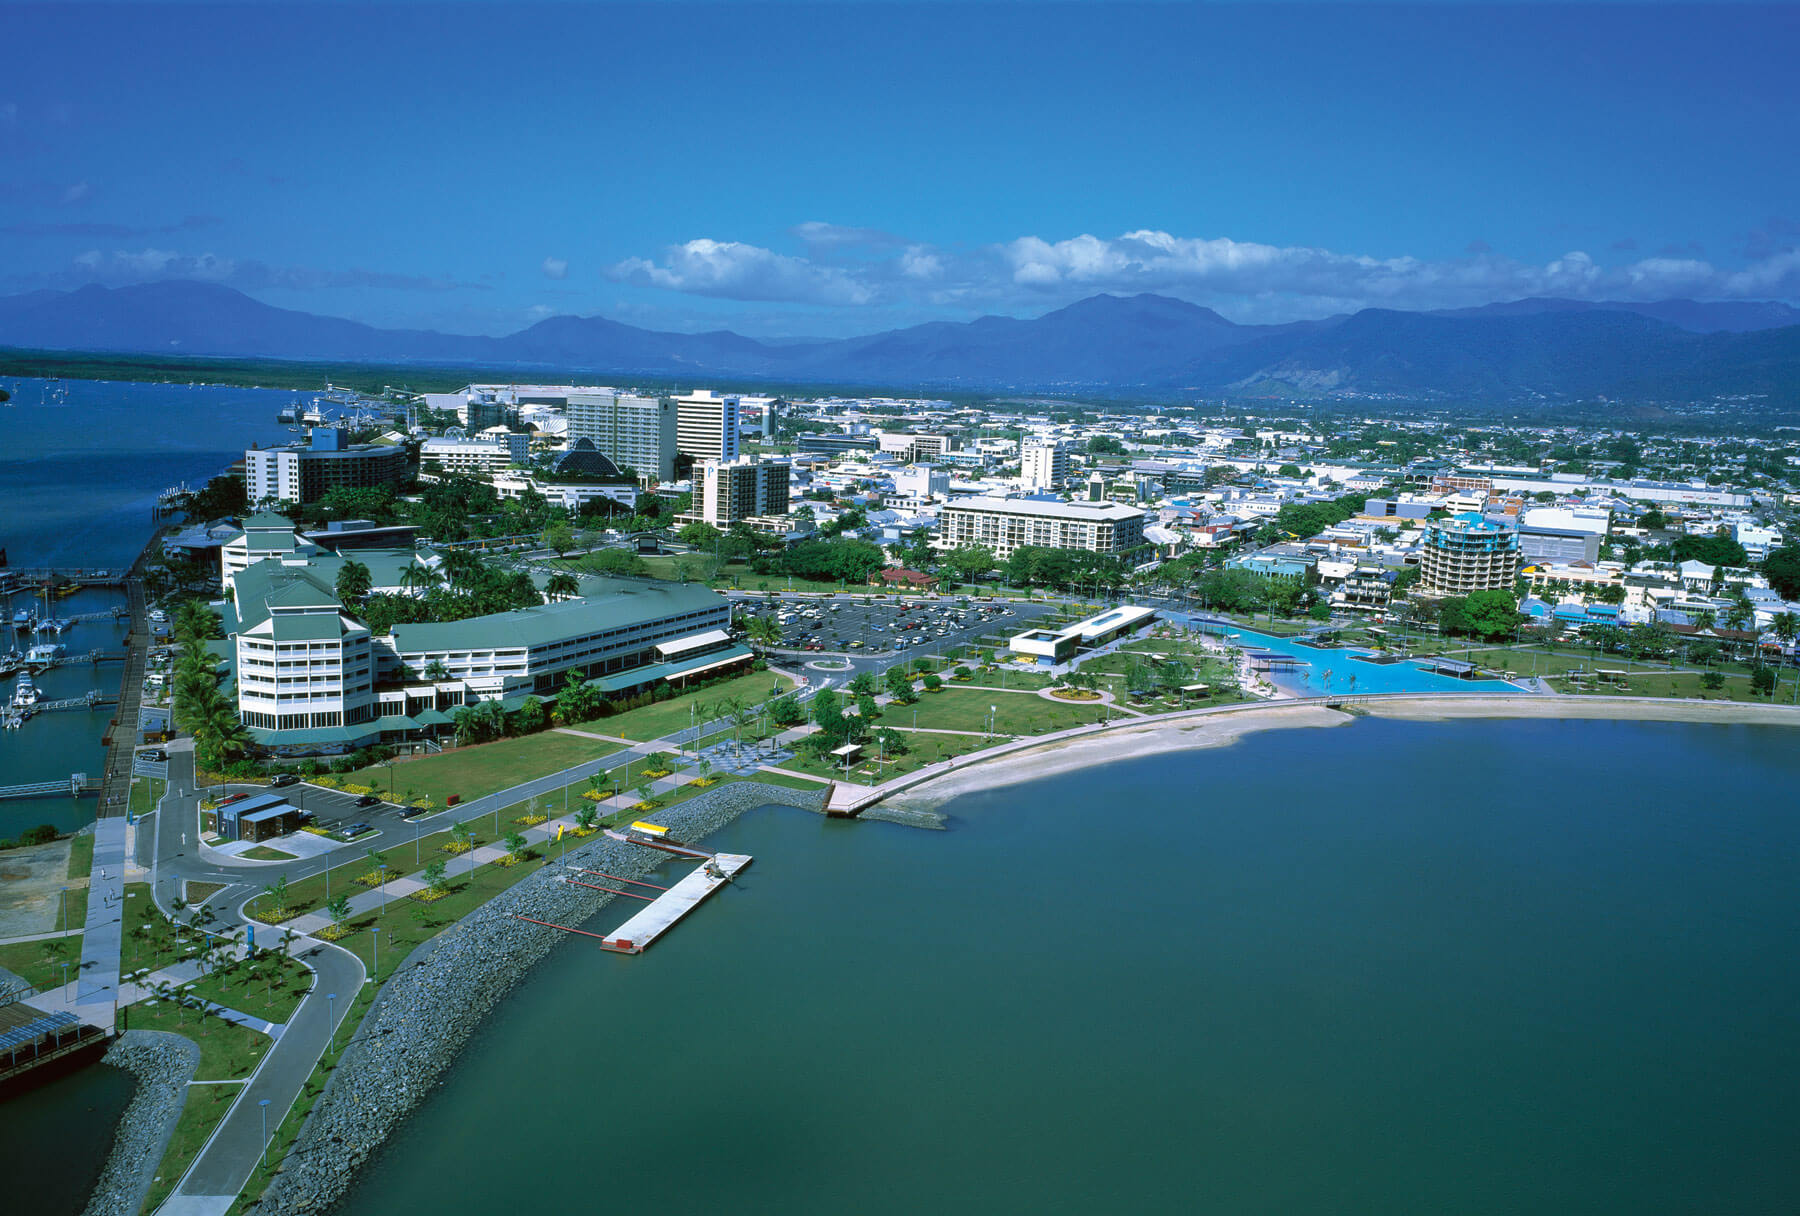 https://buddhatravel.com.au/assets/uploads/package/2019-08-20-03-14-00-Cairns-o.jpg